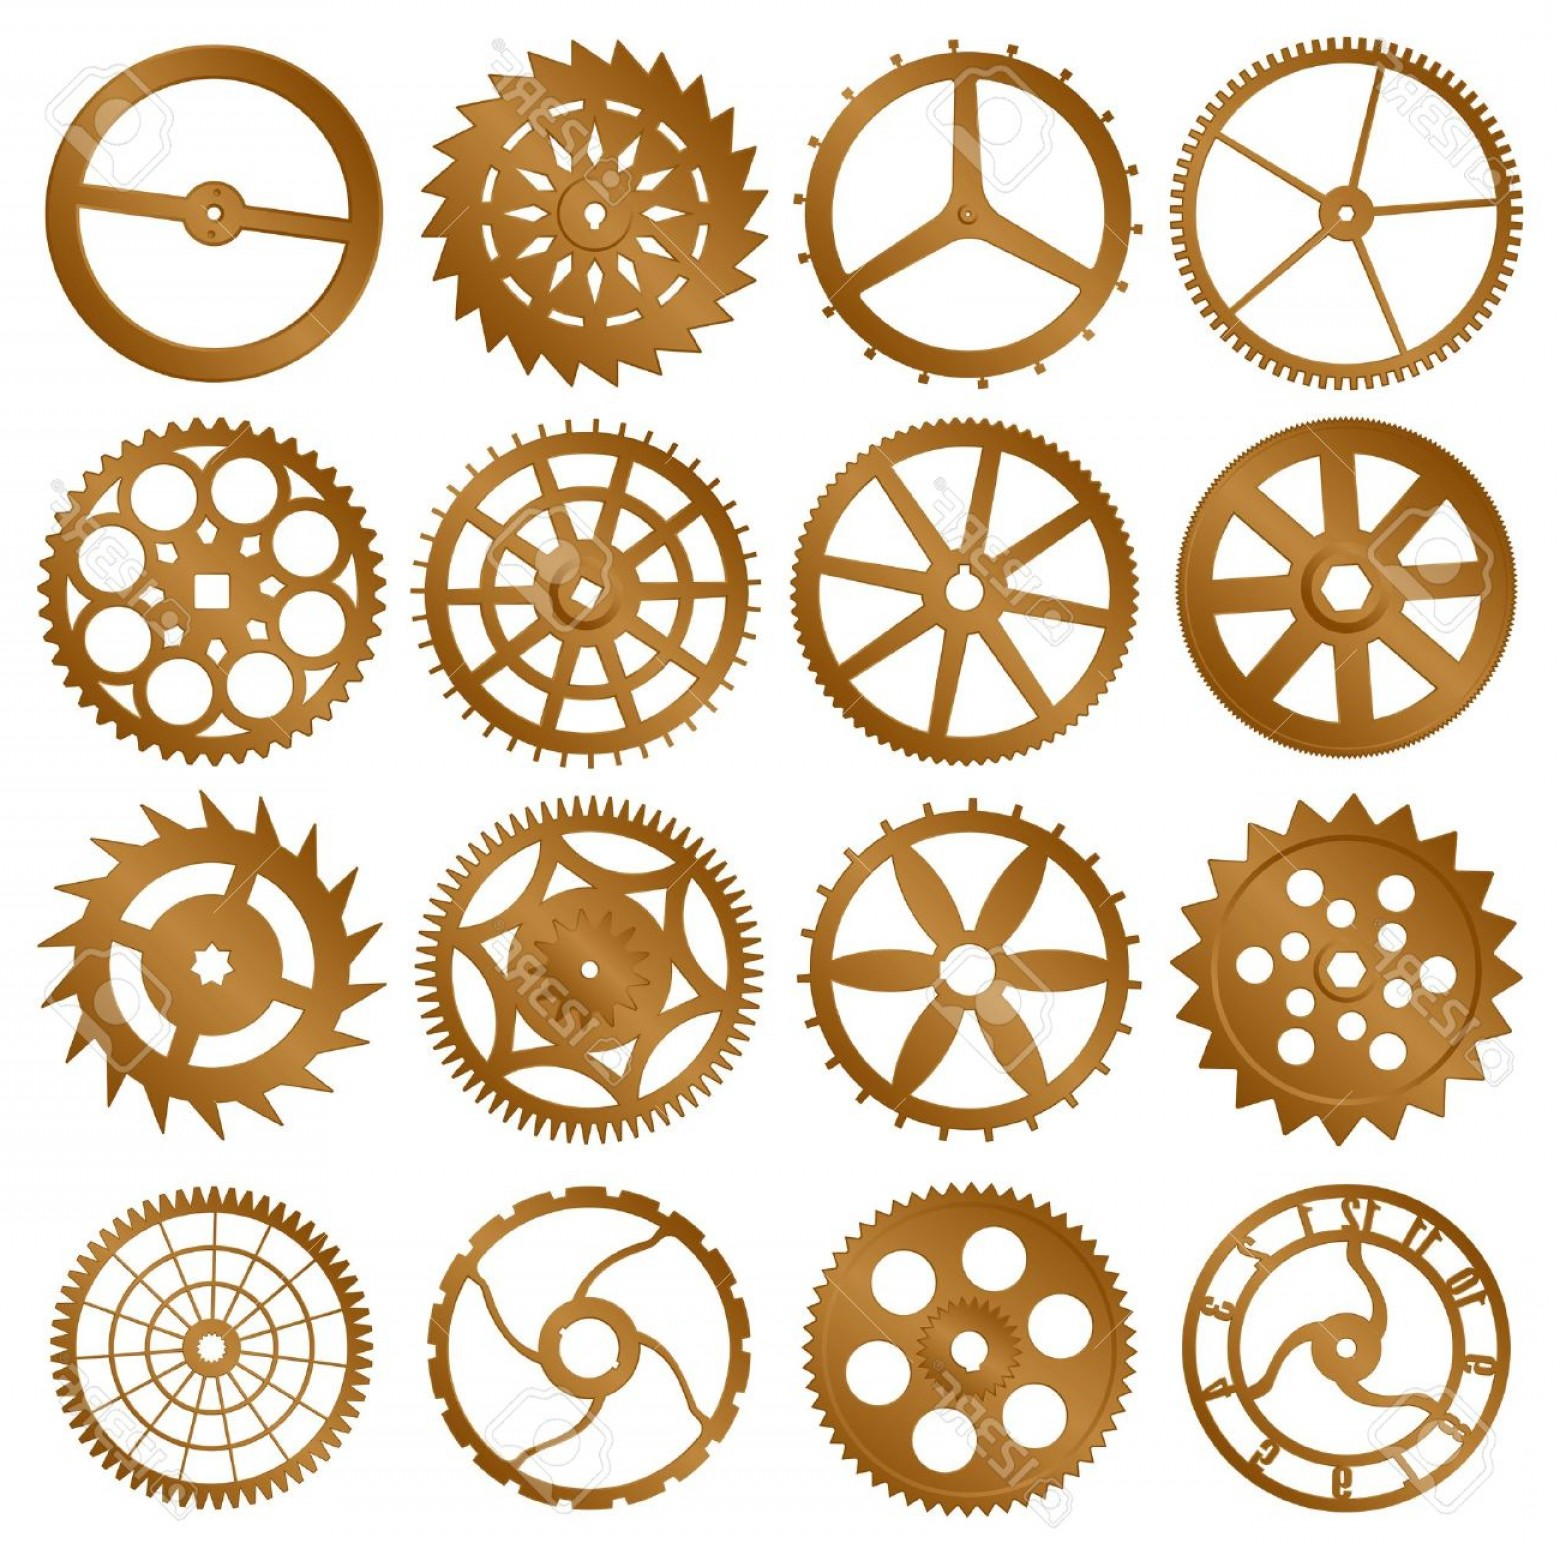 Watch Gears Vector: Photoset Of Elements For Design Copper Watch Gears